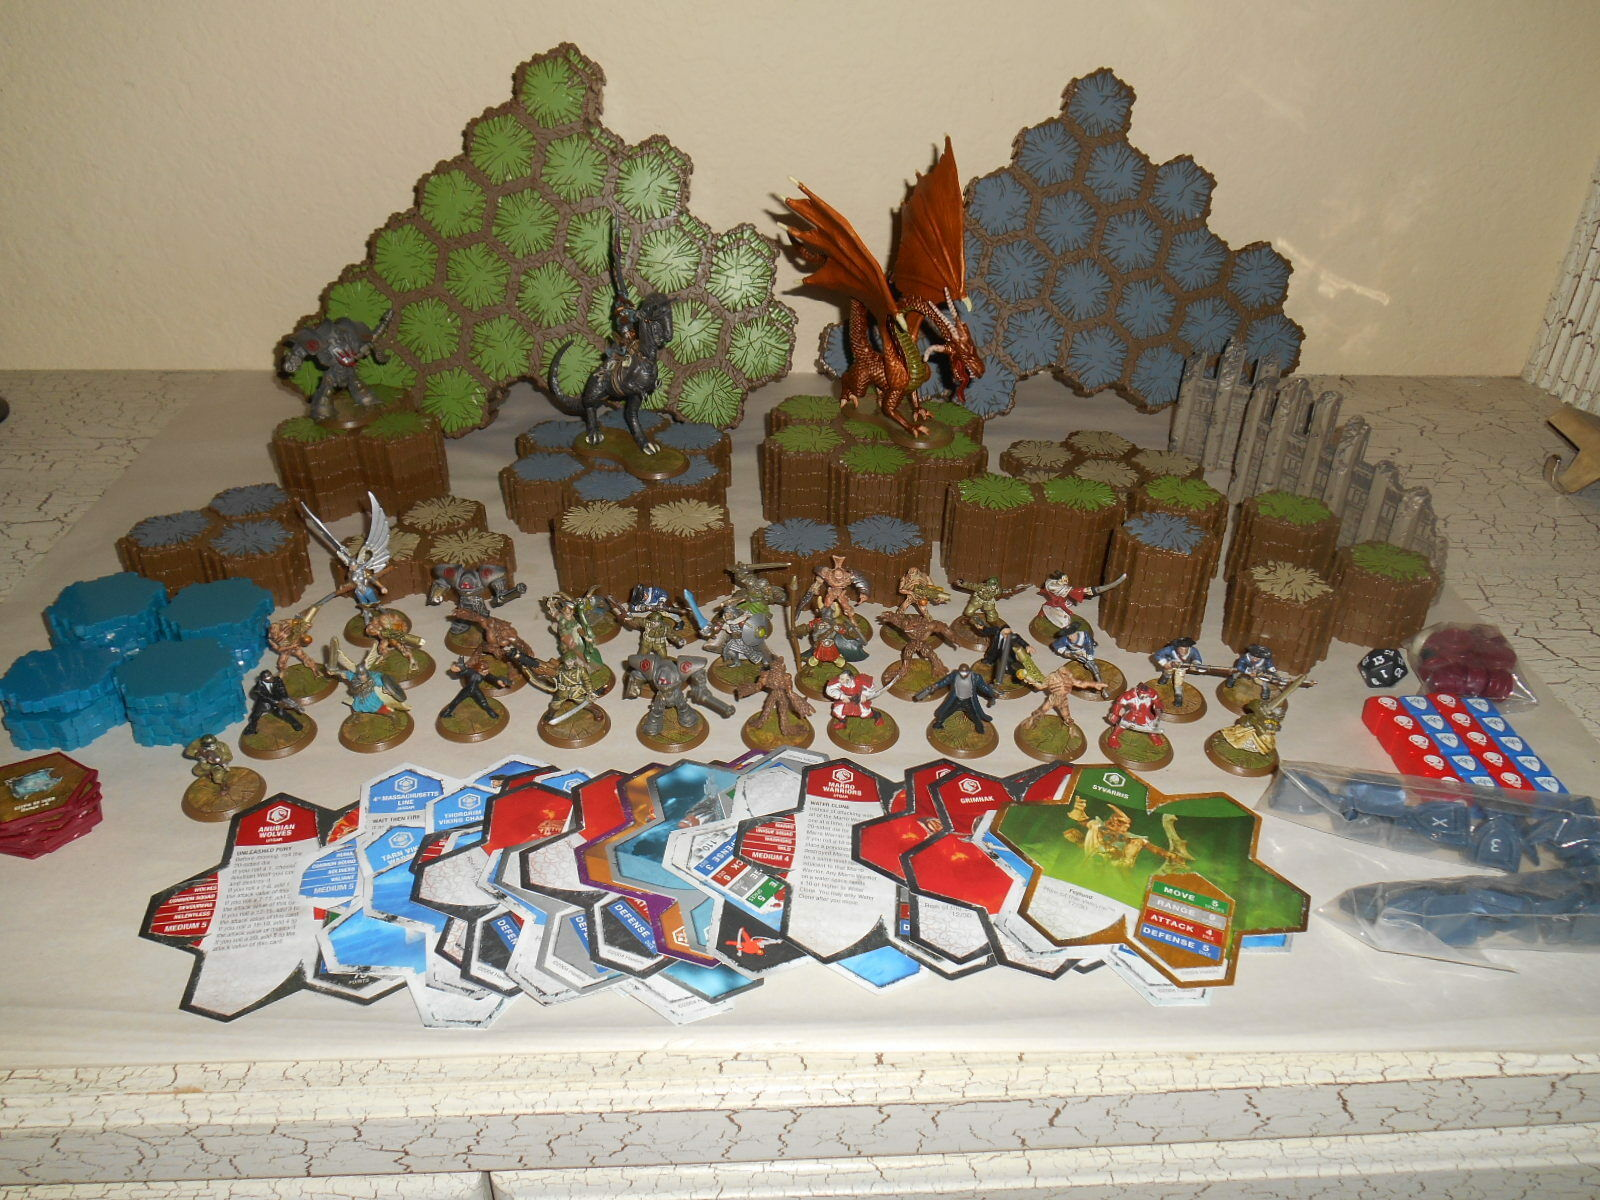 Over 200pcs HEROSCAPE HEROSCAPE HEROSCAPE Lot Hexes Figures Dragons Cards Walls more... b67456